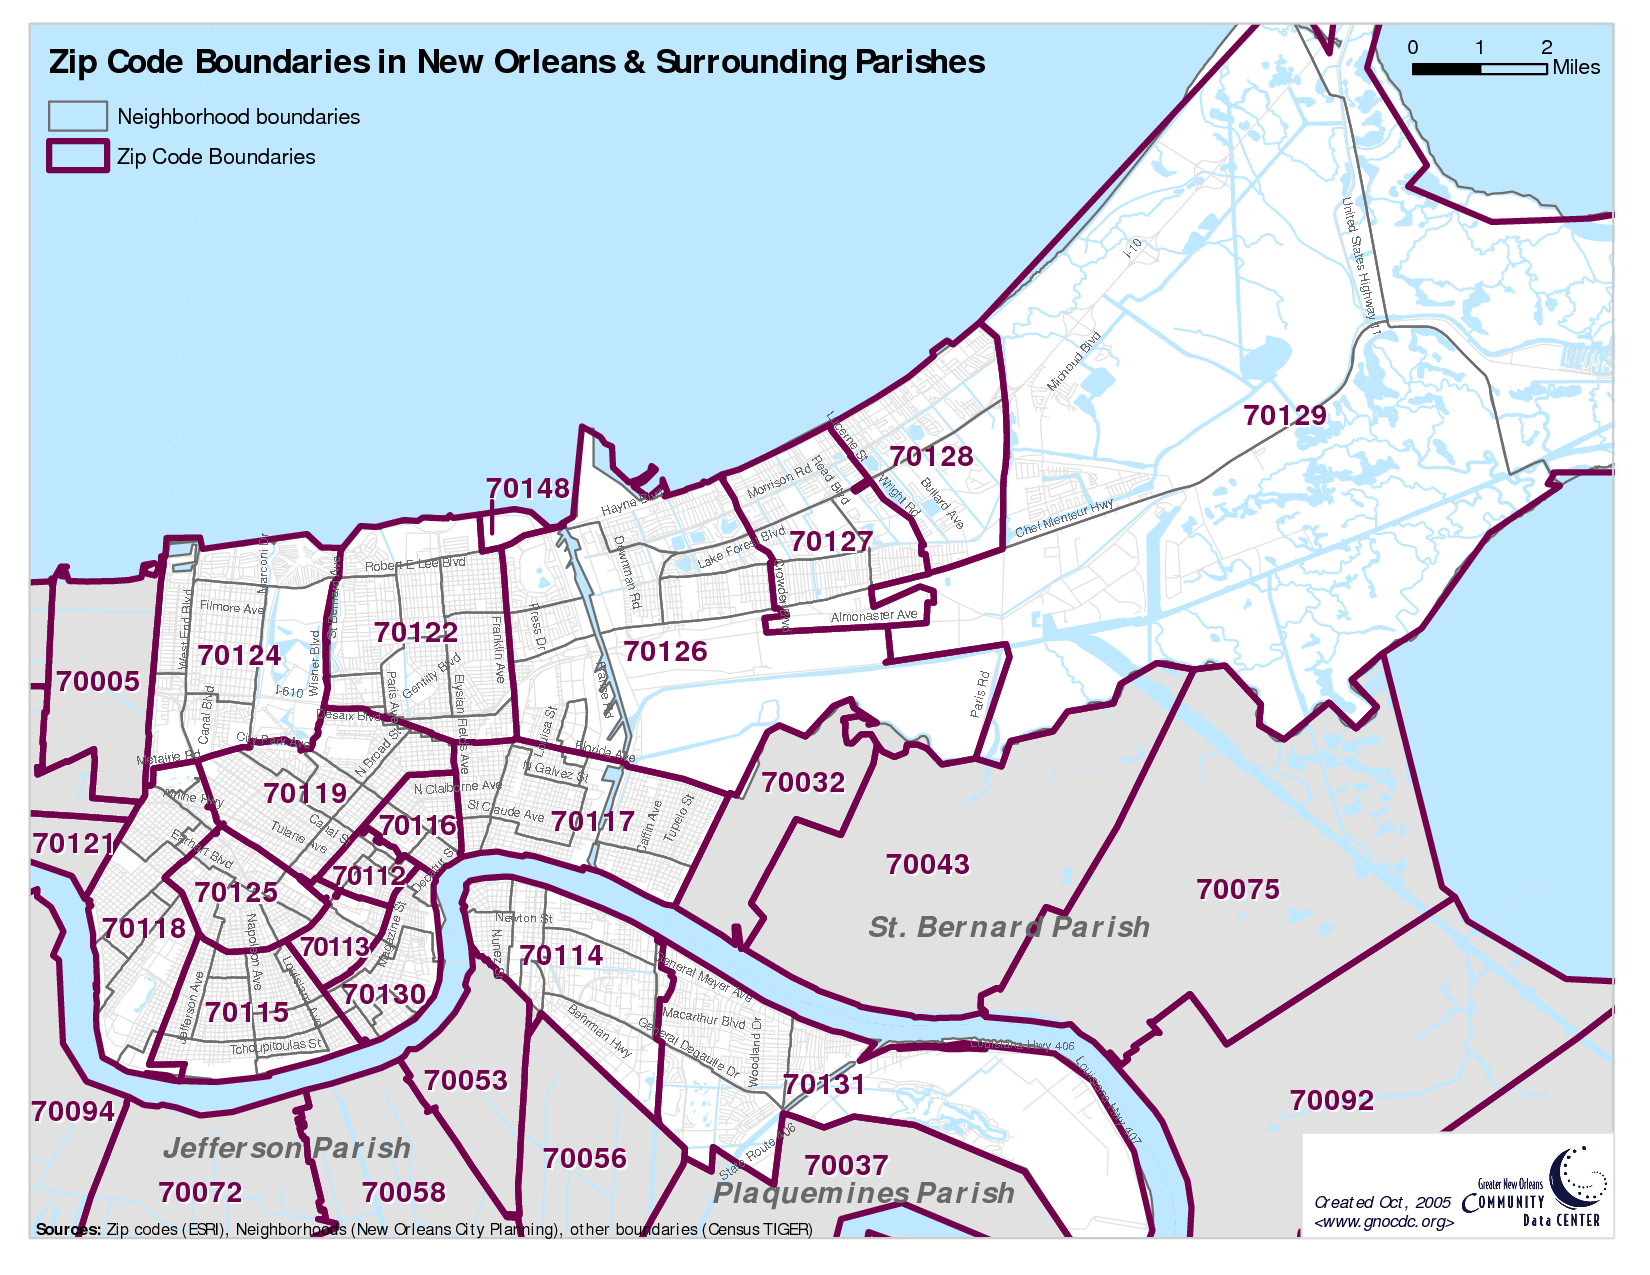 New Orleans Zip Code Map Google Image Result for http://img.docstoccdn.com/thumb/orig